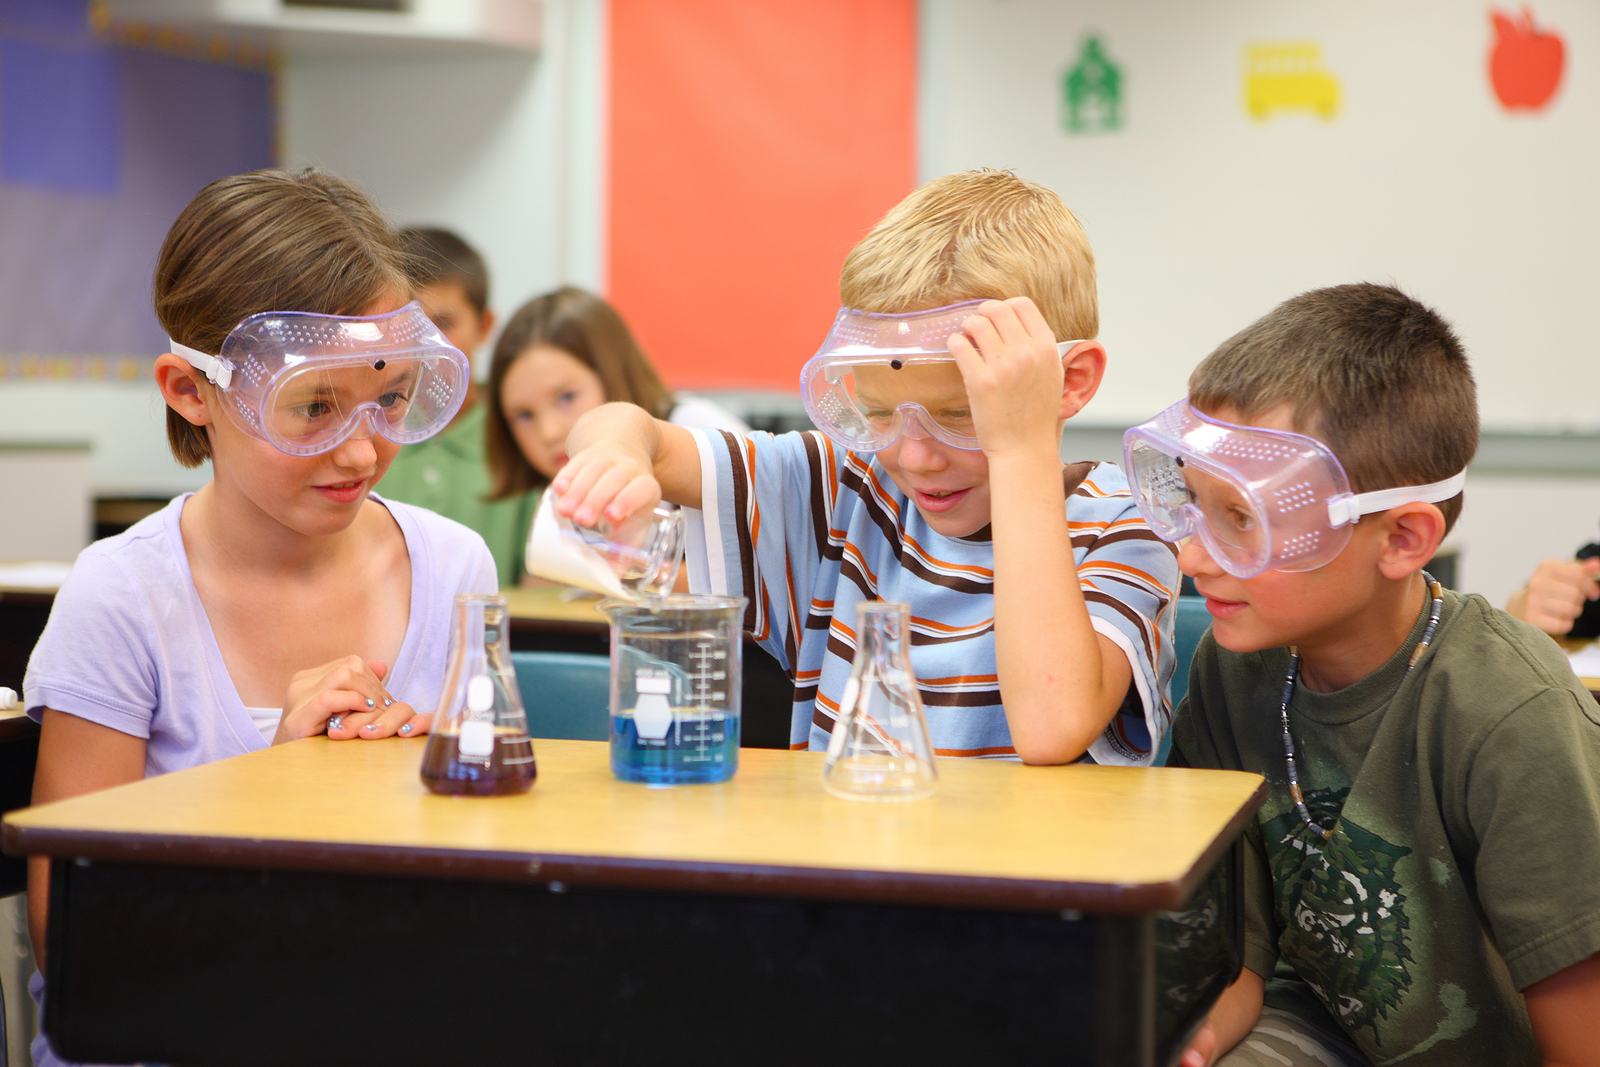 Elementary school students doing science experiment - InsideSources